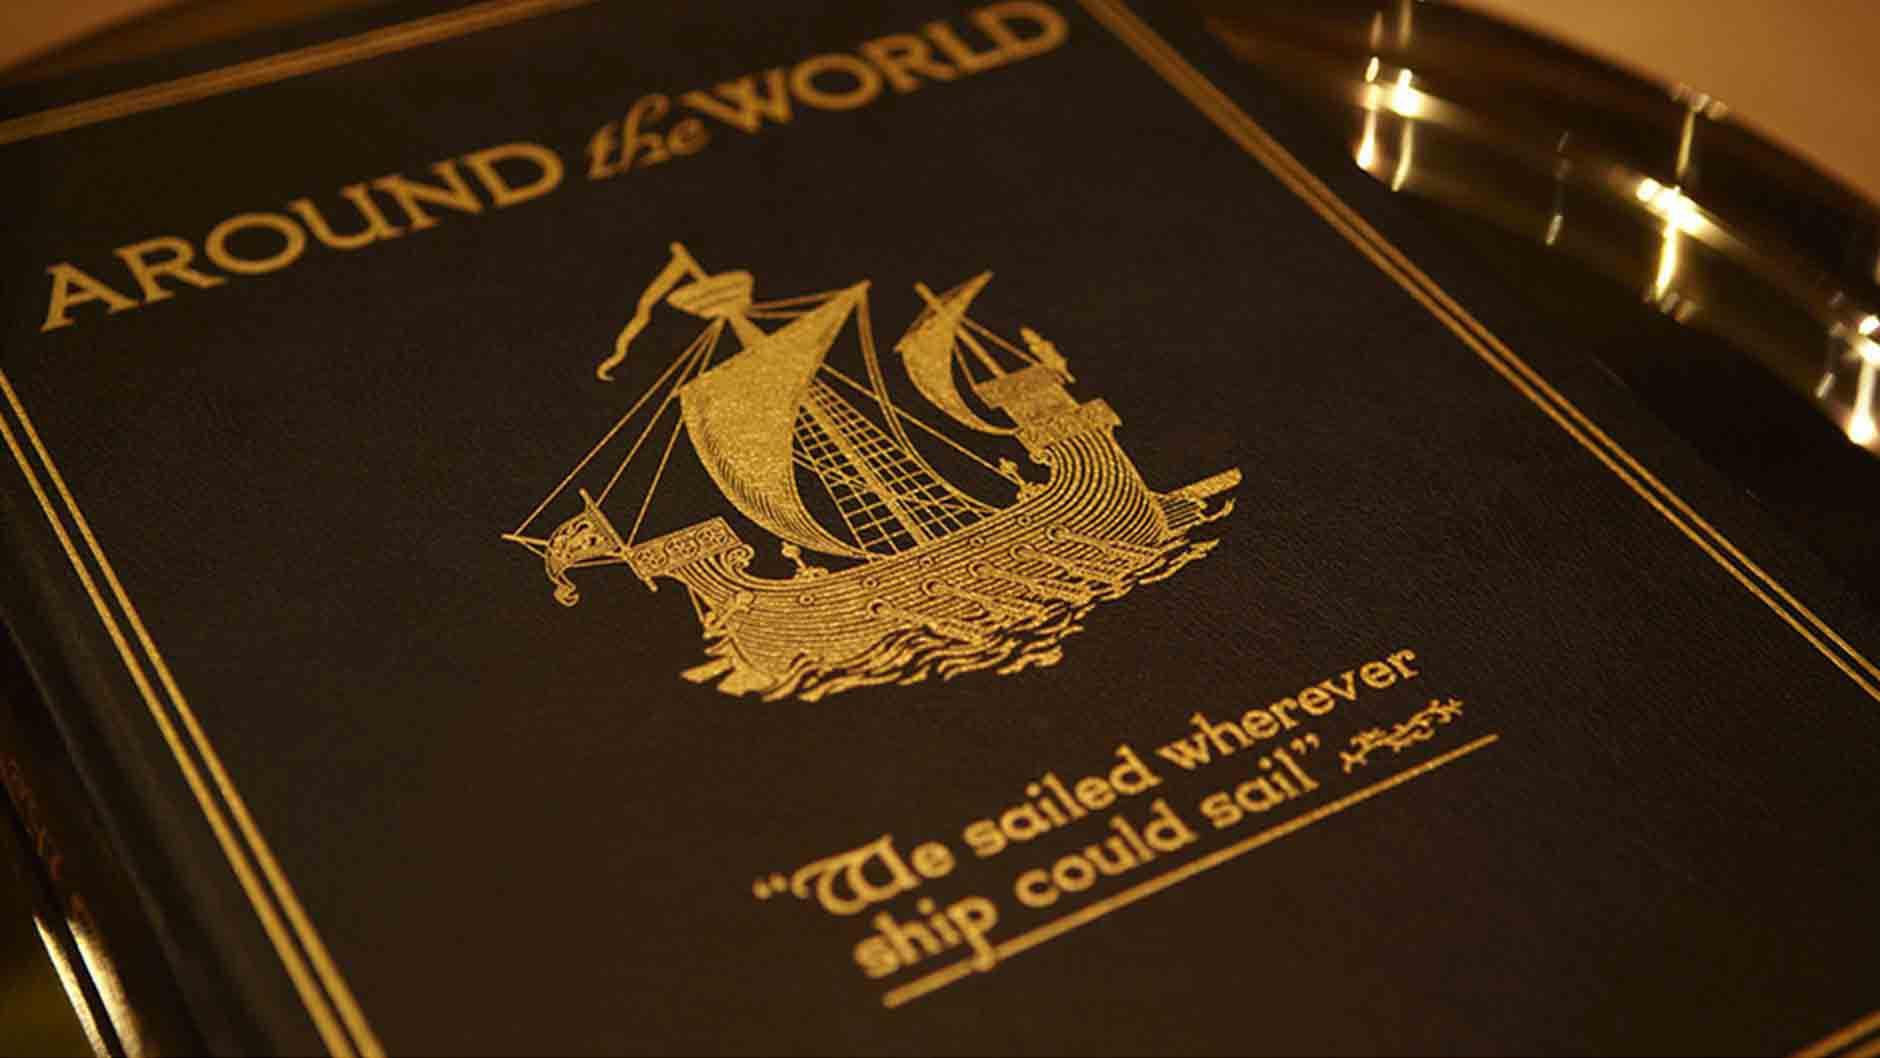 Libro «Around the world, we sailed wherever ship could sail»